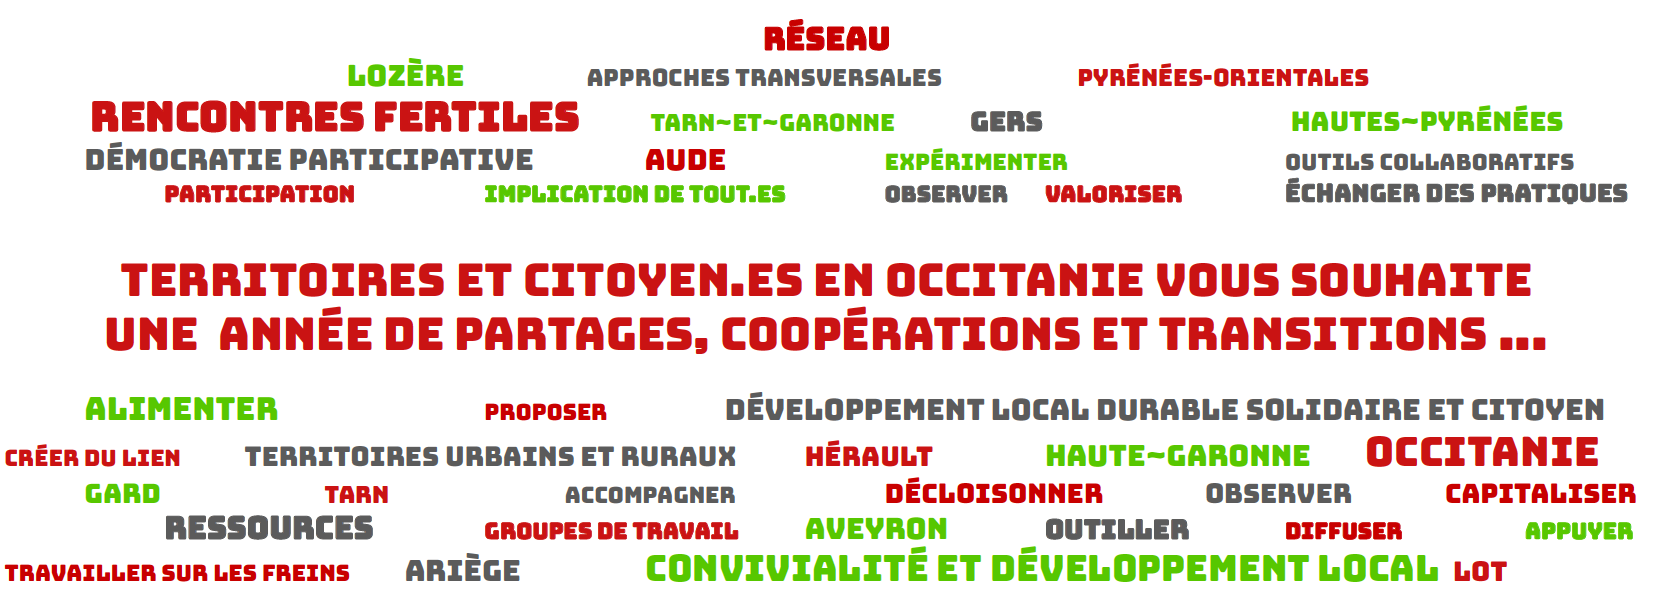 image voeux_TCO_2020.png (0.2MB)